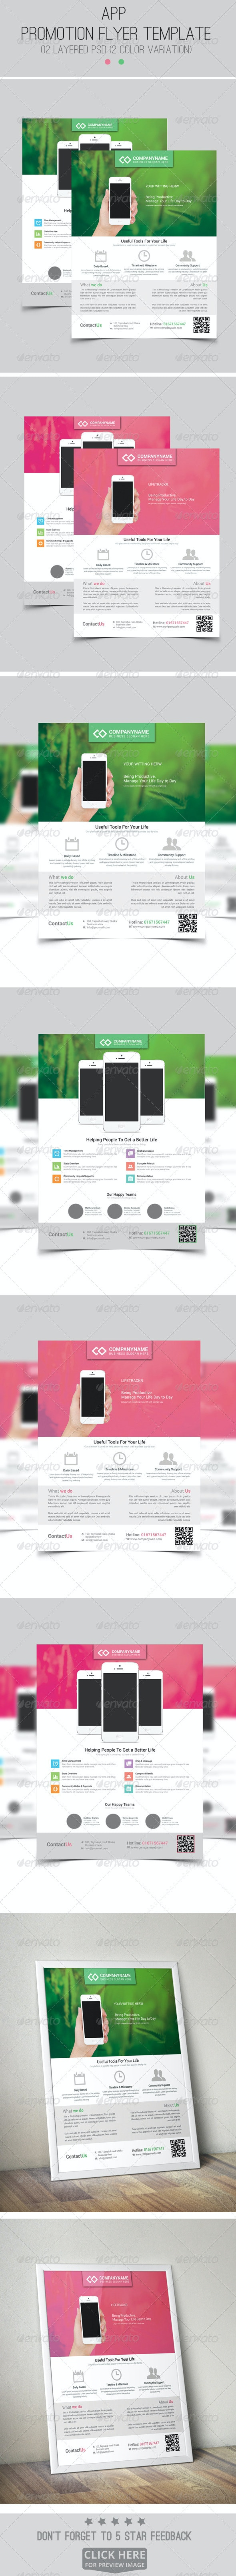 App Promotion Modern Flyer/Poster Template - Flyers Print Templates